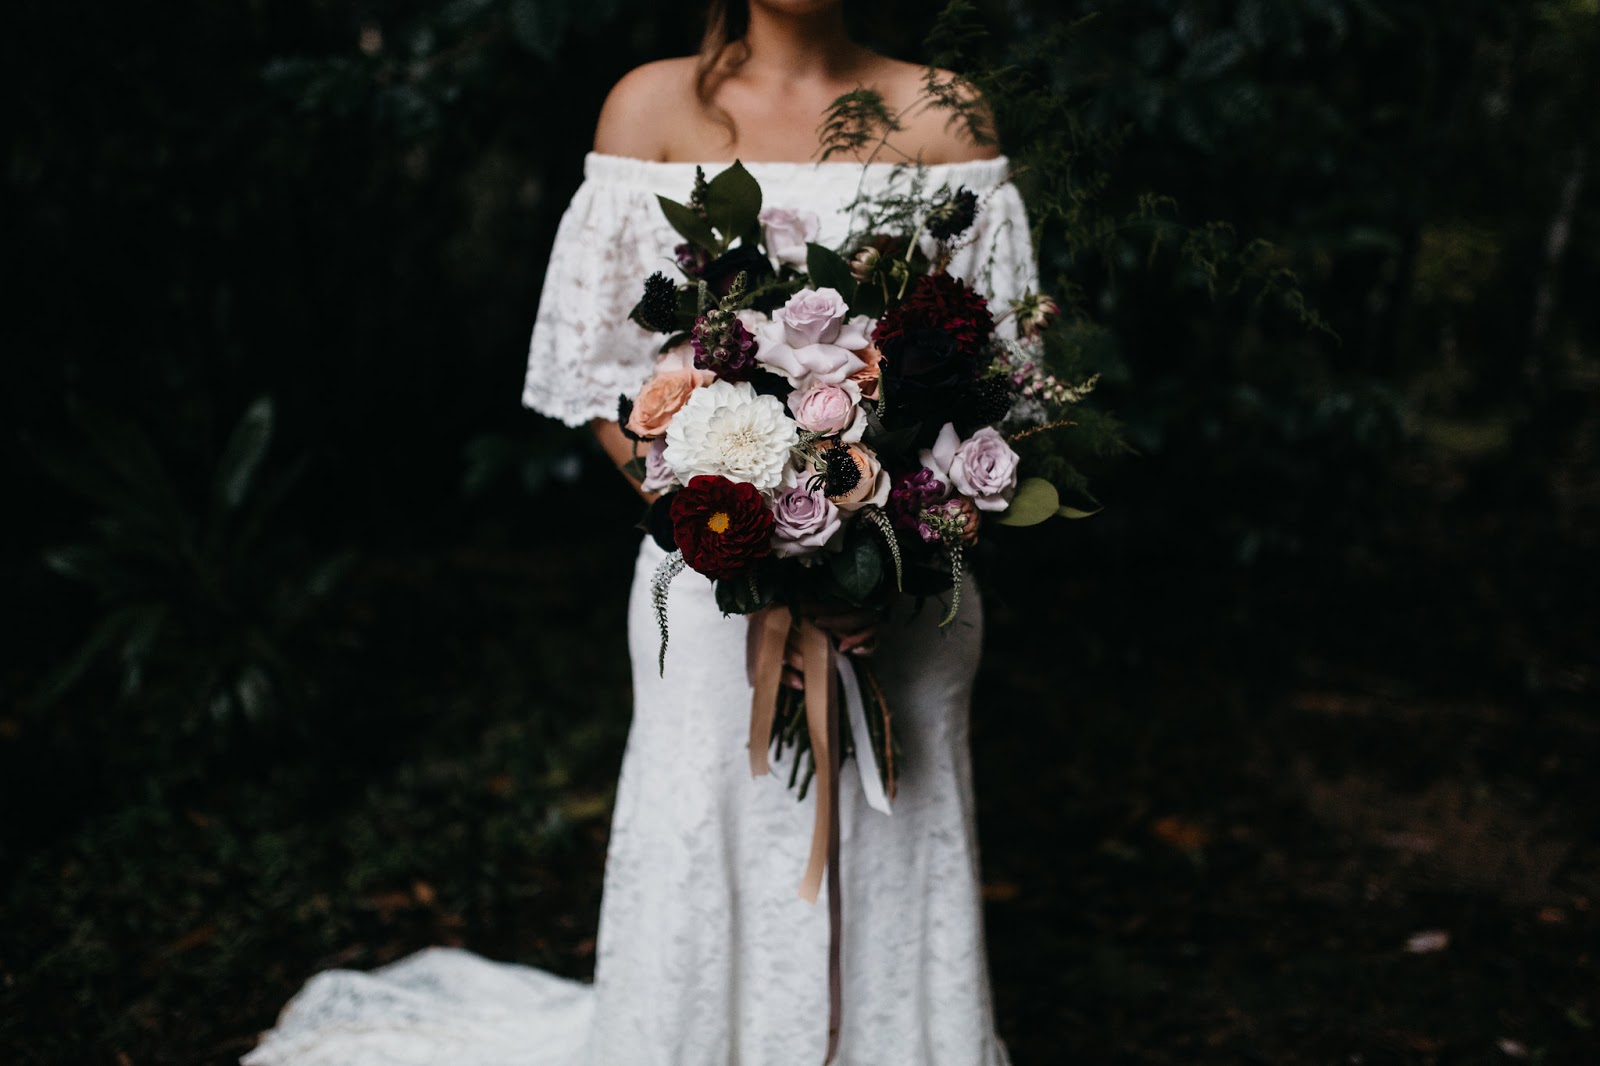 10 wedding floral designers bohemian blooms you dont want to to the aisle australia townsville wedding florist junglespirit Image collections